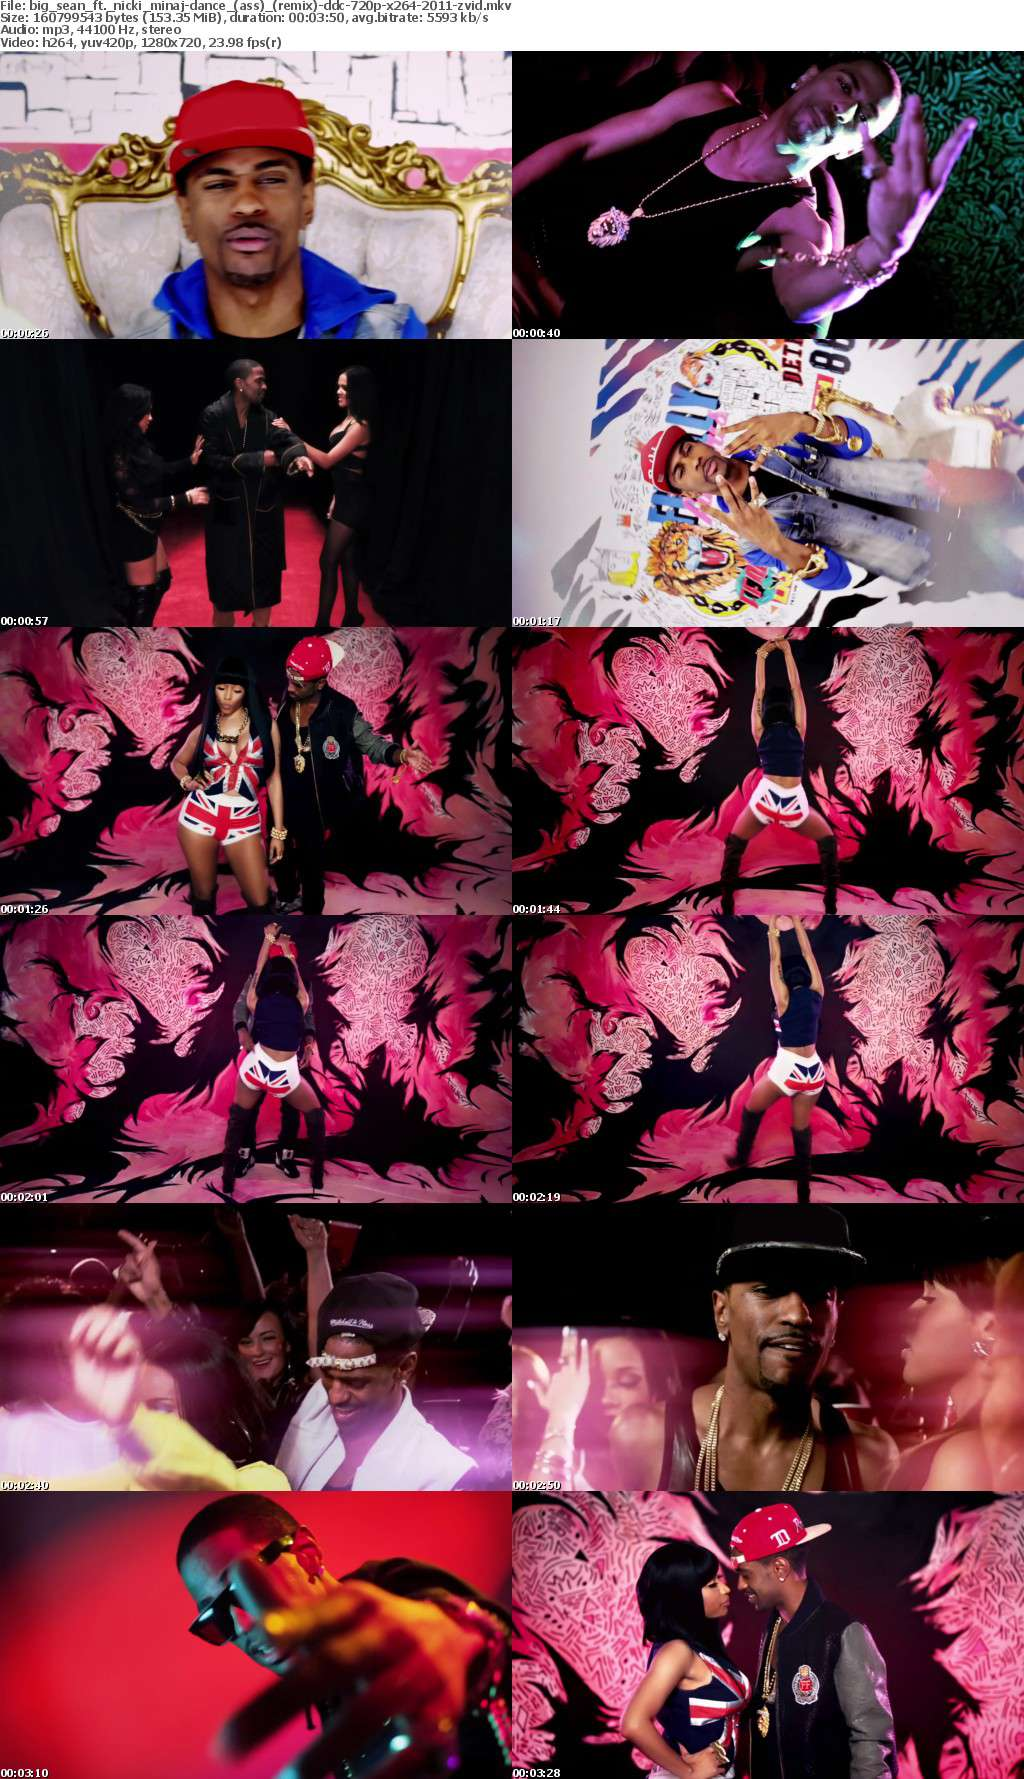 Big Sean ft Nicki Minaj-Dance (Ass) (Remix)-DDC-720p-x264-2011-ZViD